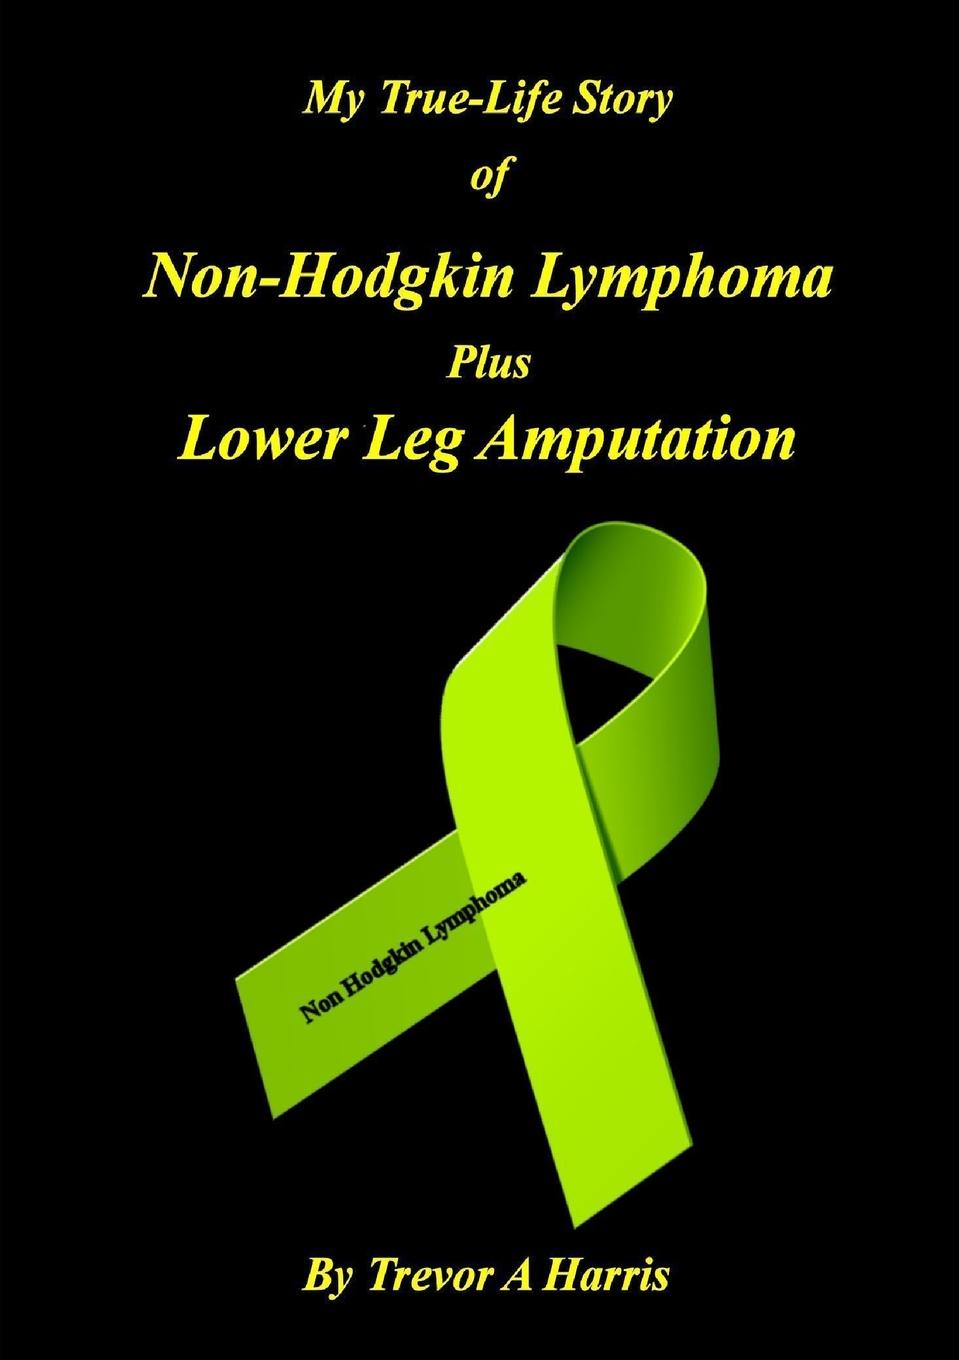 Trevor A Harris My True-Life Story of Non-Hodgkin Lymphoma plus Amputation trevor a harris my true life story of non hodgkin lymphoma plus amputation